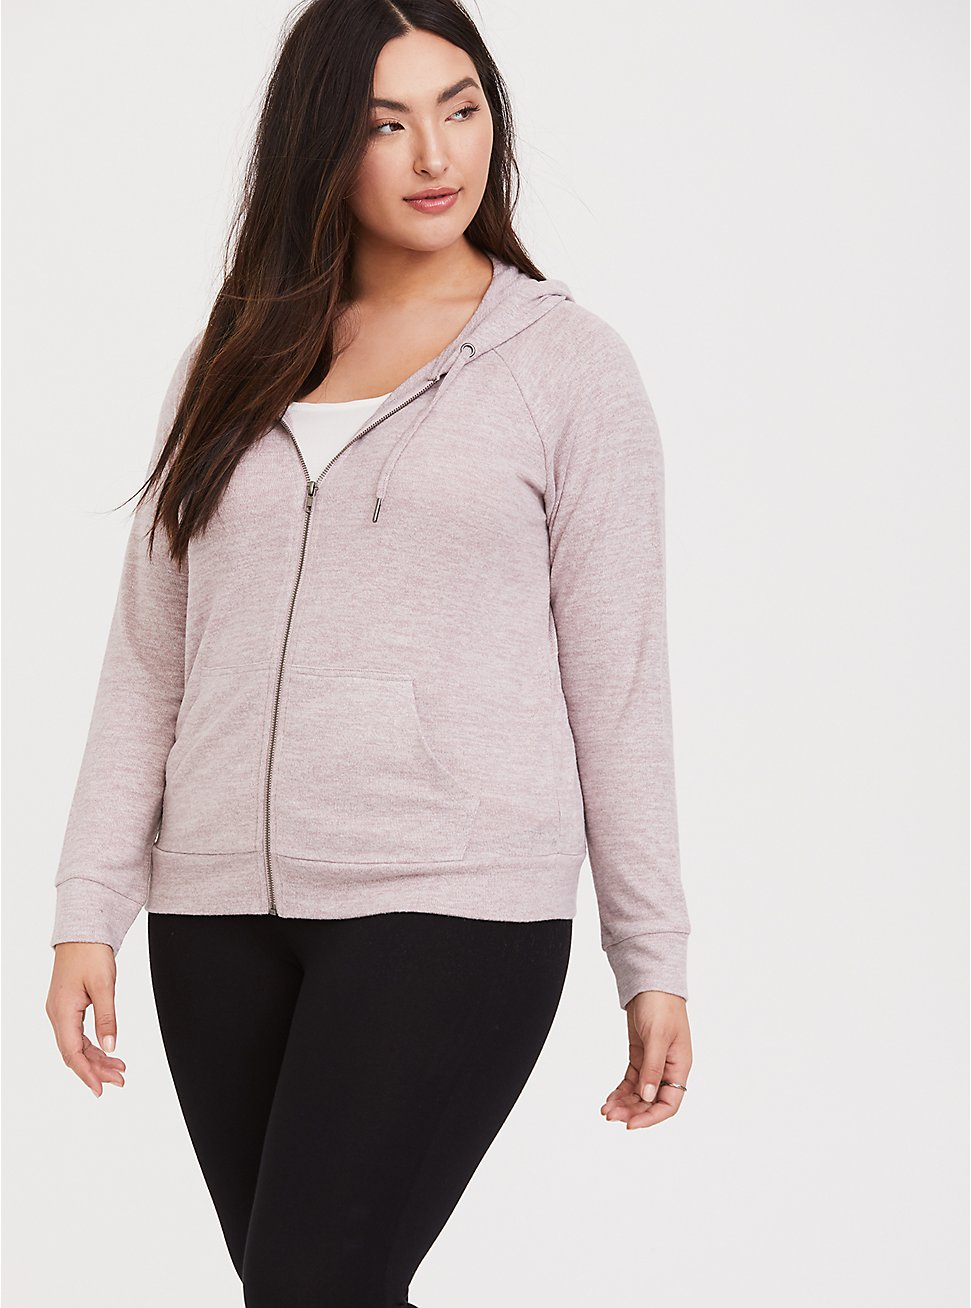 Super Soft Plush Dusty Pink Zip Hoodie, QUARTZ PINK, hi-res